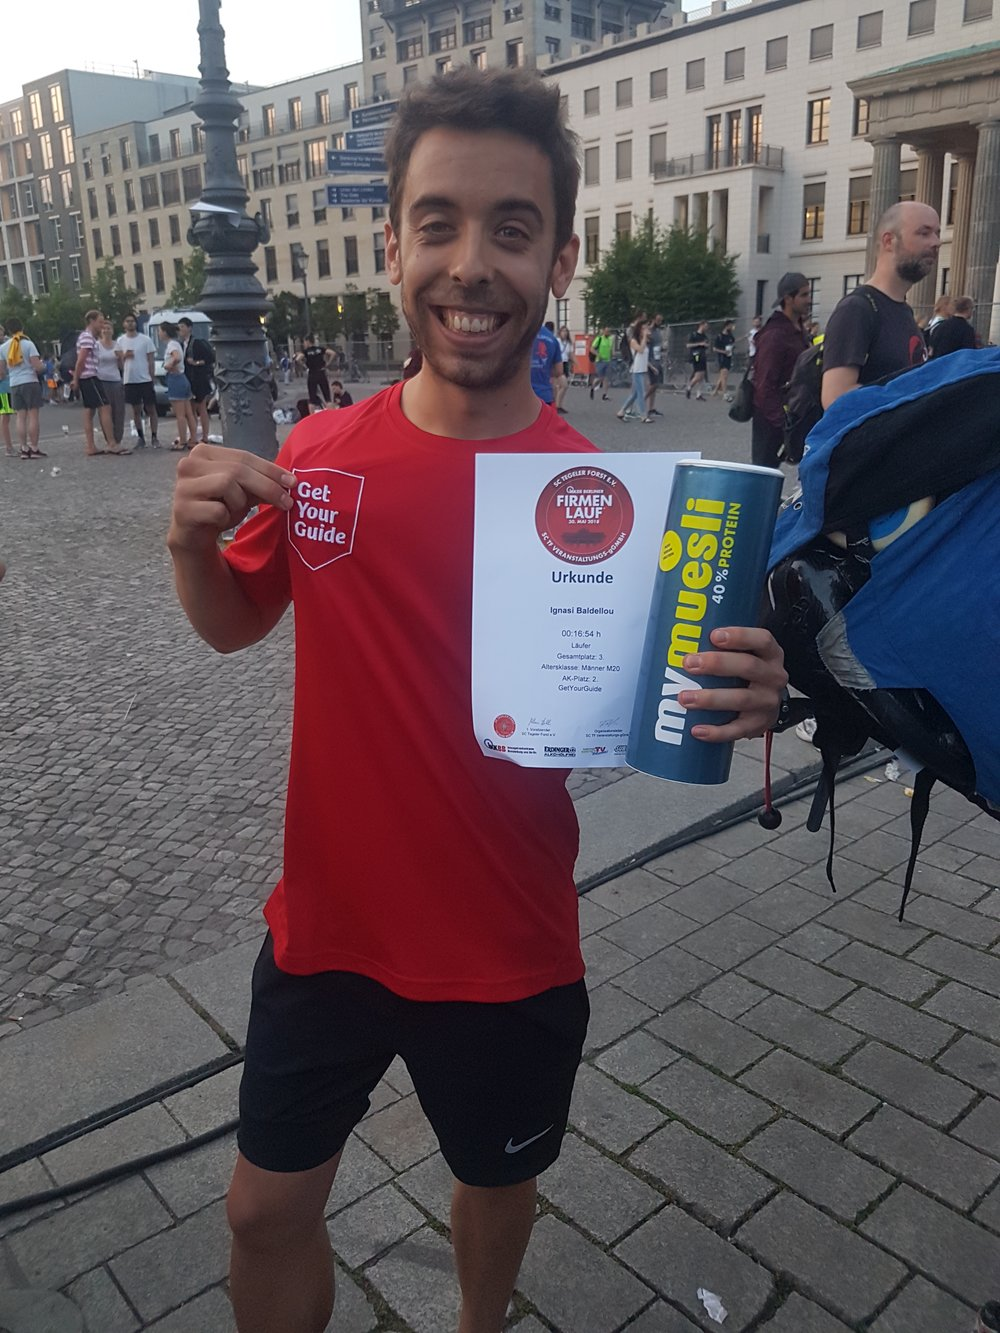 Ignasi, following his 3rd-place finish in the 2018 IKK BB Berliner Firmenlauf